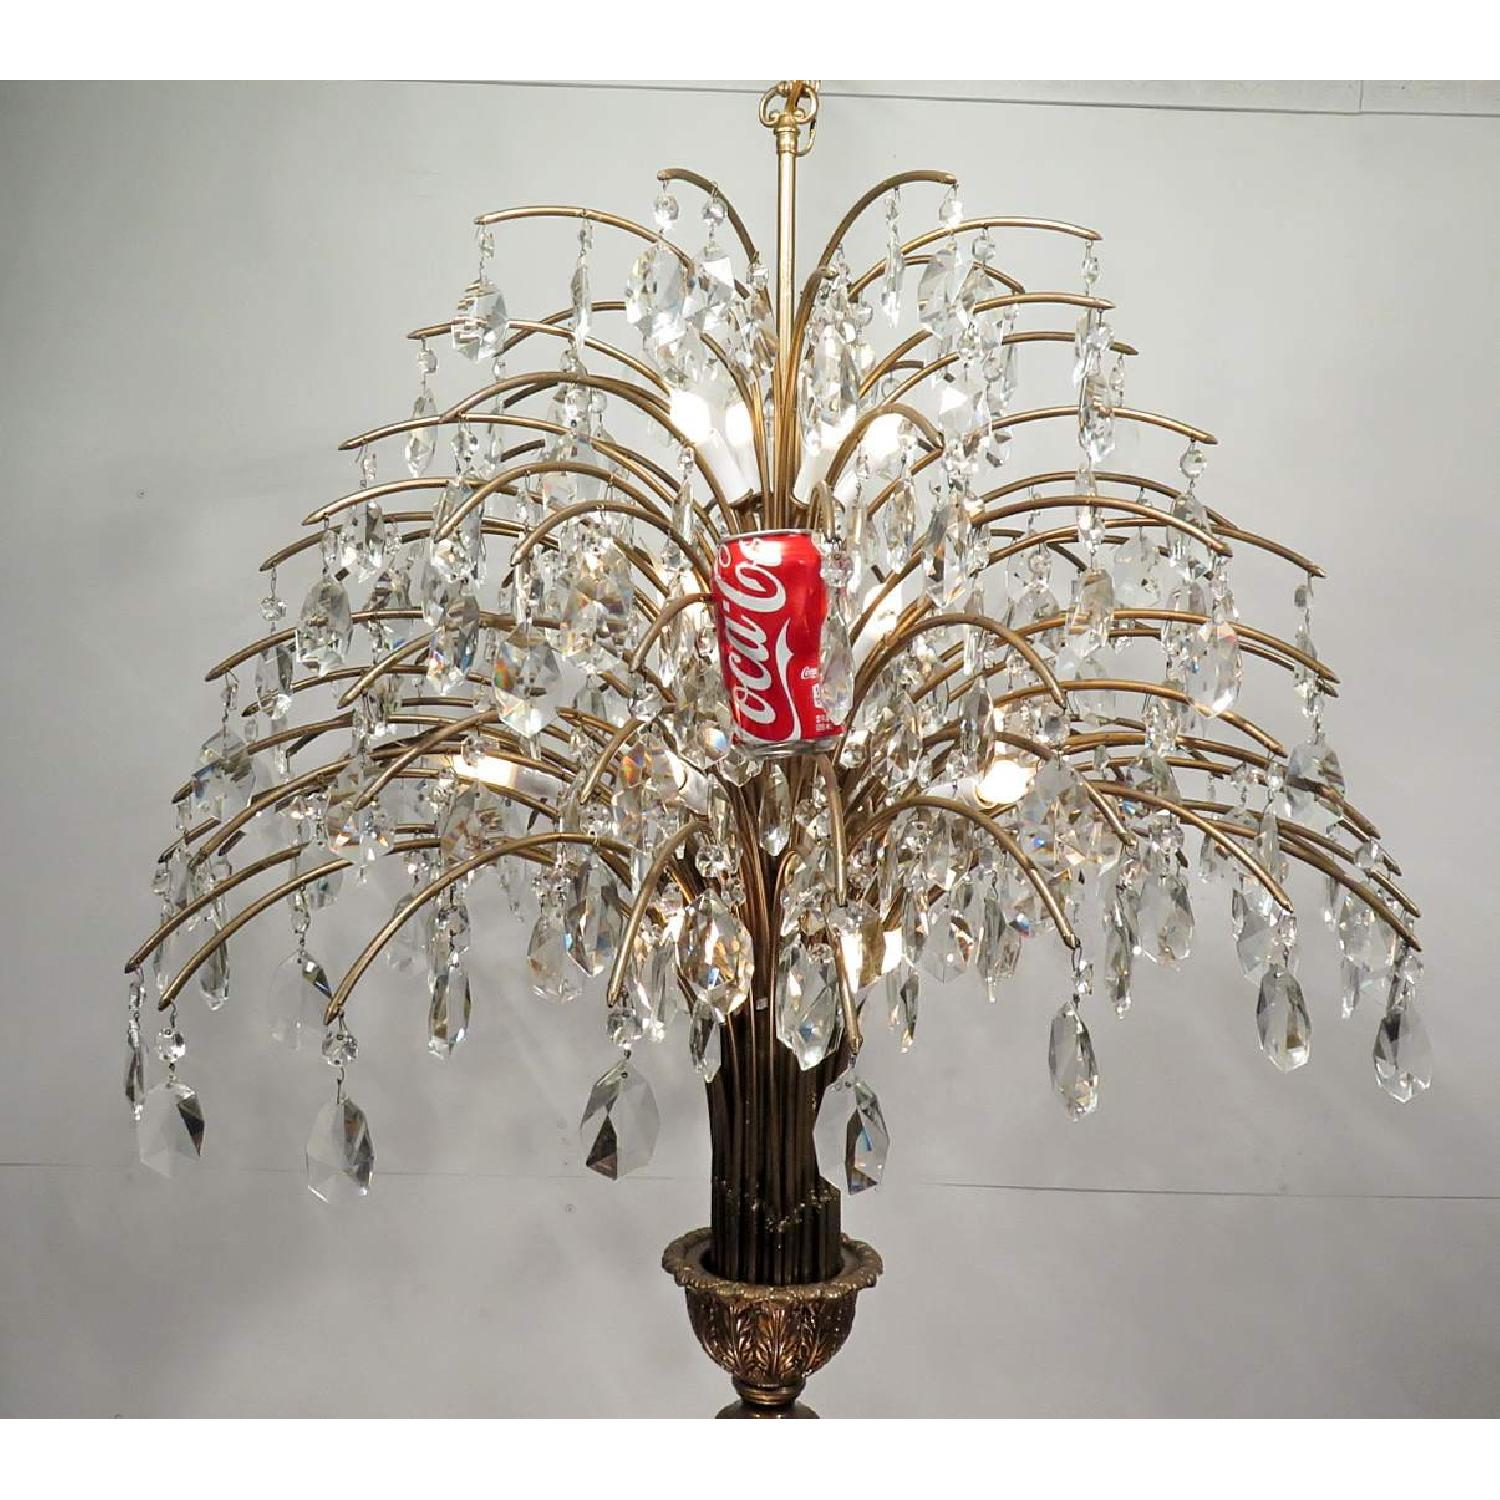 Antique Vintage Mid-Century Grand Chandelier Fixture w/ Crystals - image-5